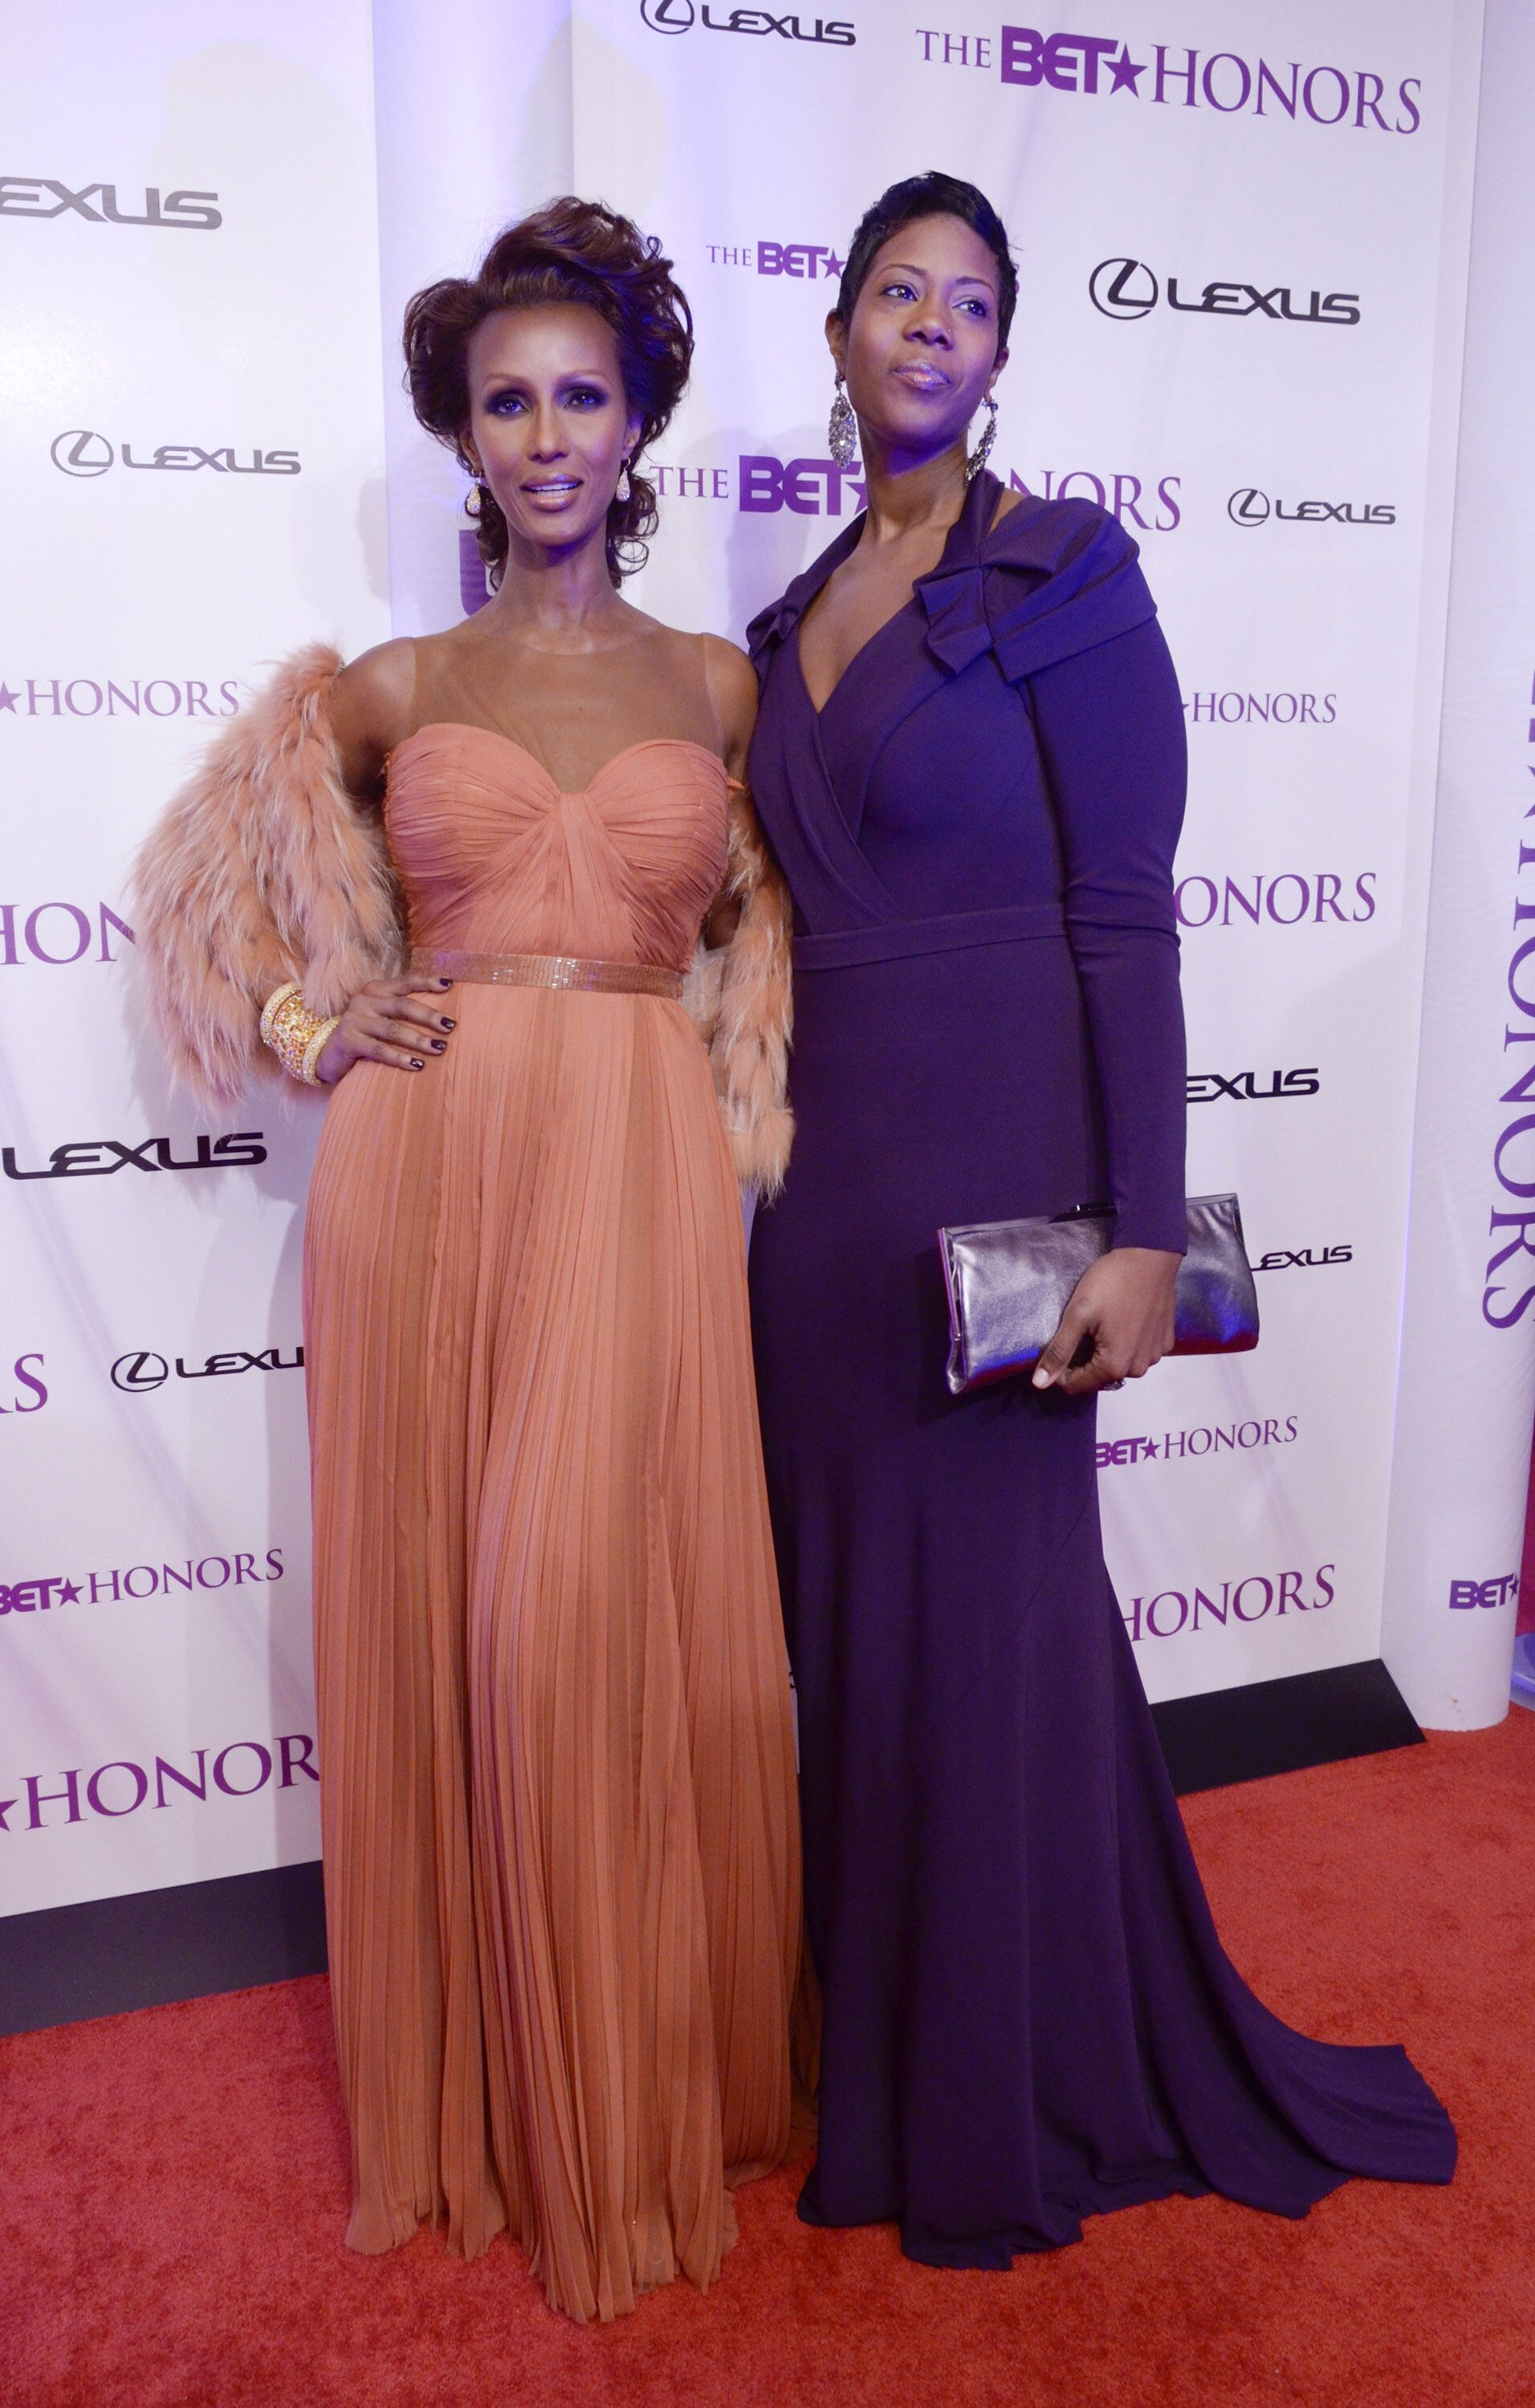 Iman and Zulekha Haywood pose for photographers on the red carpet during the 4th annual BET Honors at the Warner Theatre on January 15, 2011. | Source: Getty Images